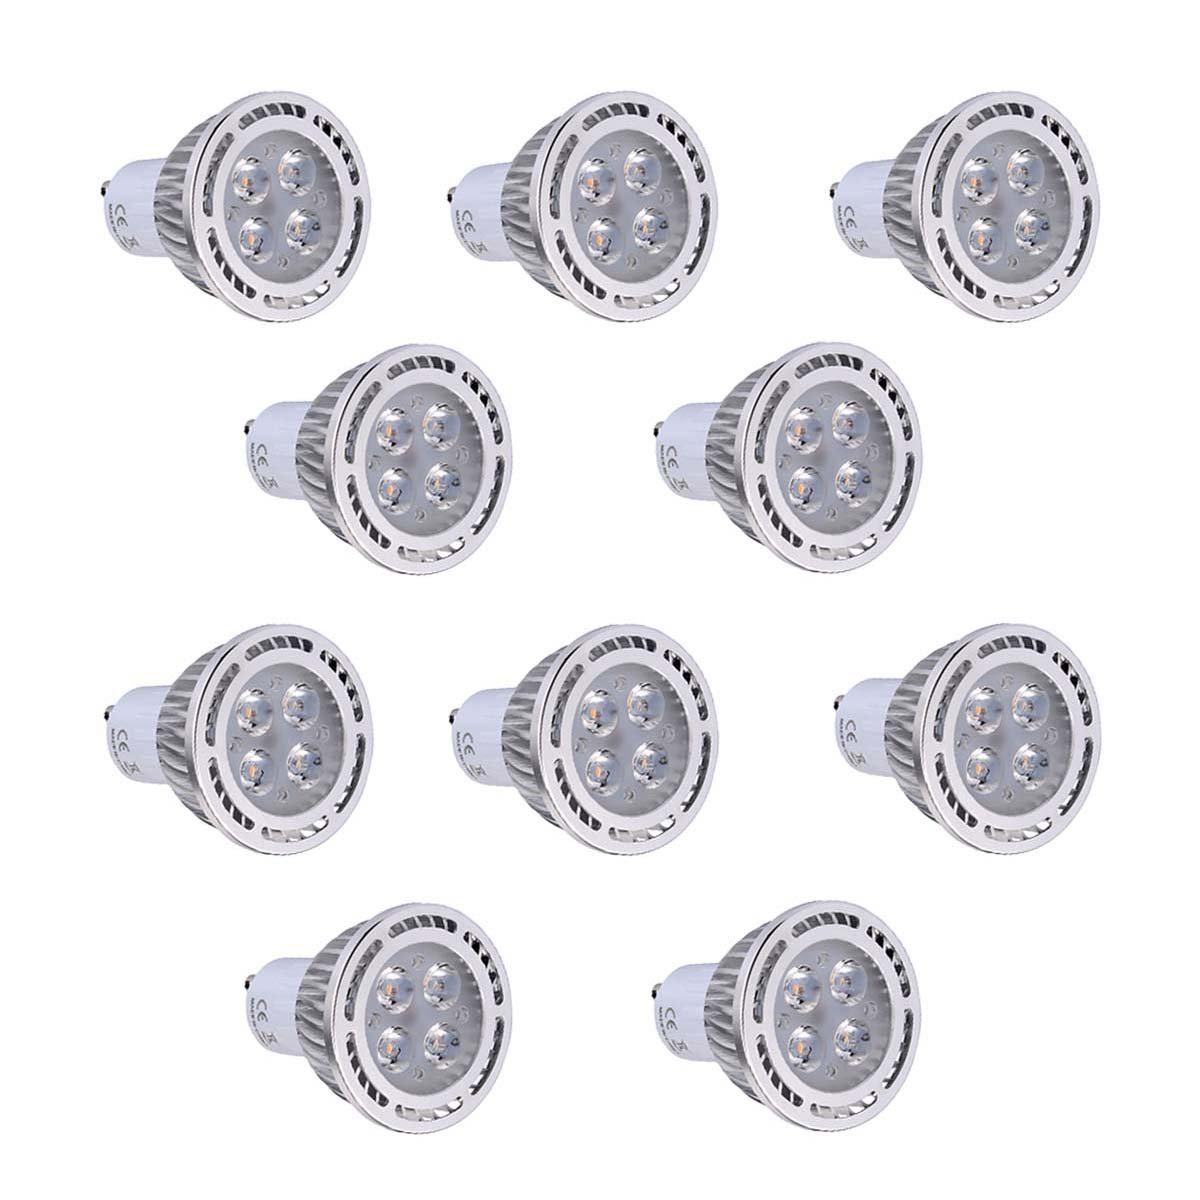 GS-Bulb GU10 4W SMD 3030 300-400 LM Warm White/Cool White Clear LED Spotlight AC 85-265V AC 220-240V AC 110-130V (10Pcs) (Color : Cool White, Size : 85-265V)